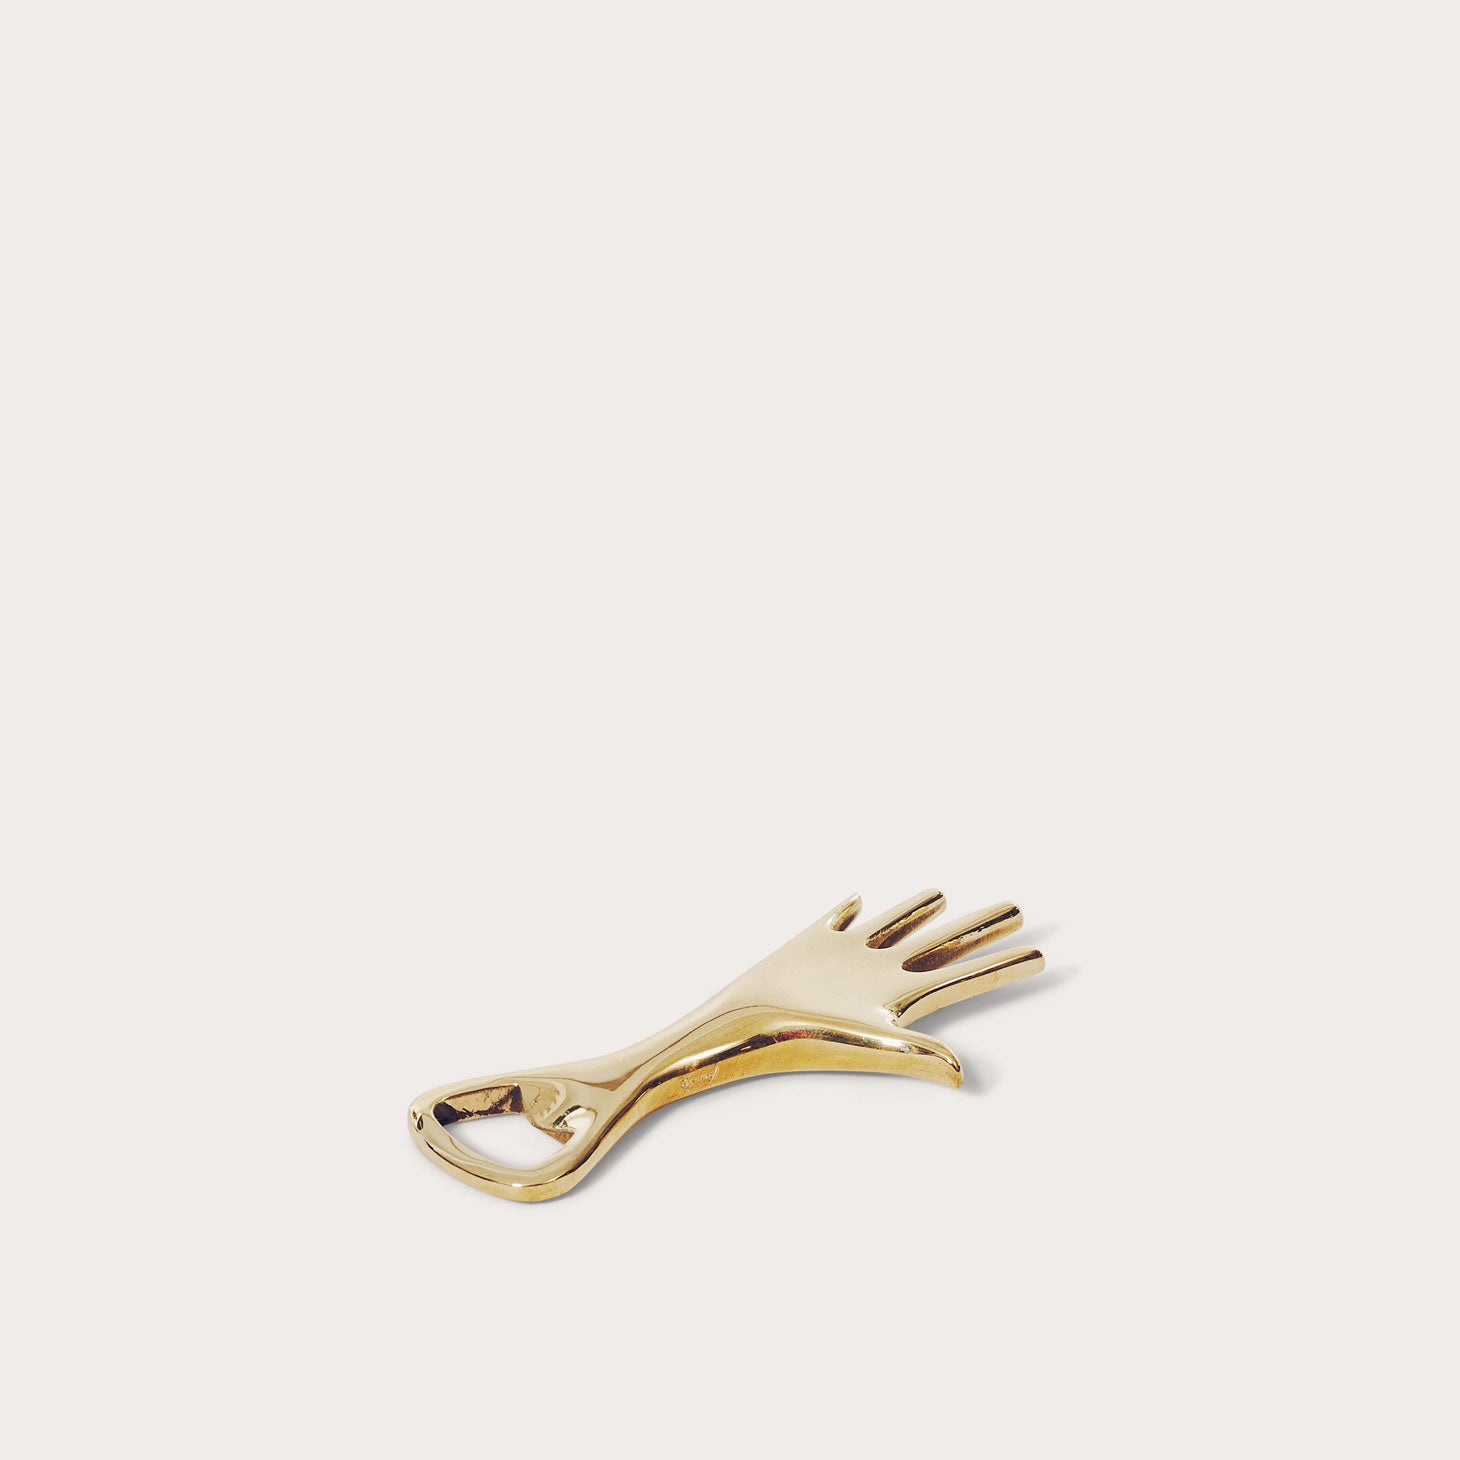 Bottle Opener Hand Accessories Carl Auböck Designer Furniture Sku: 772-100-10015